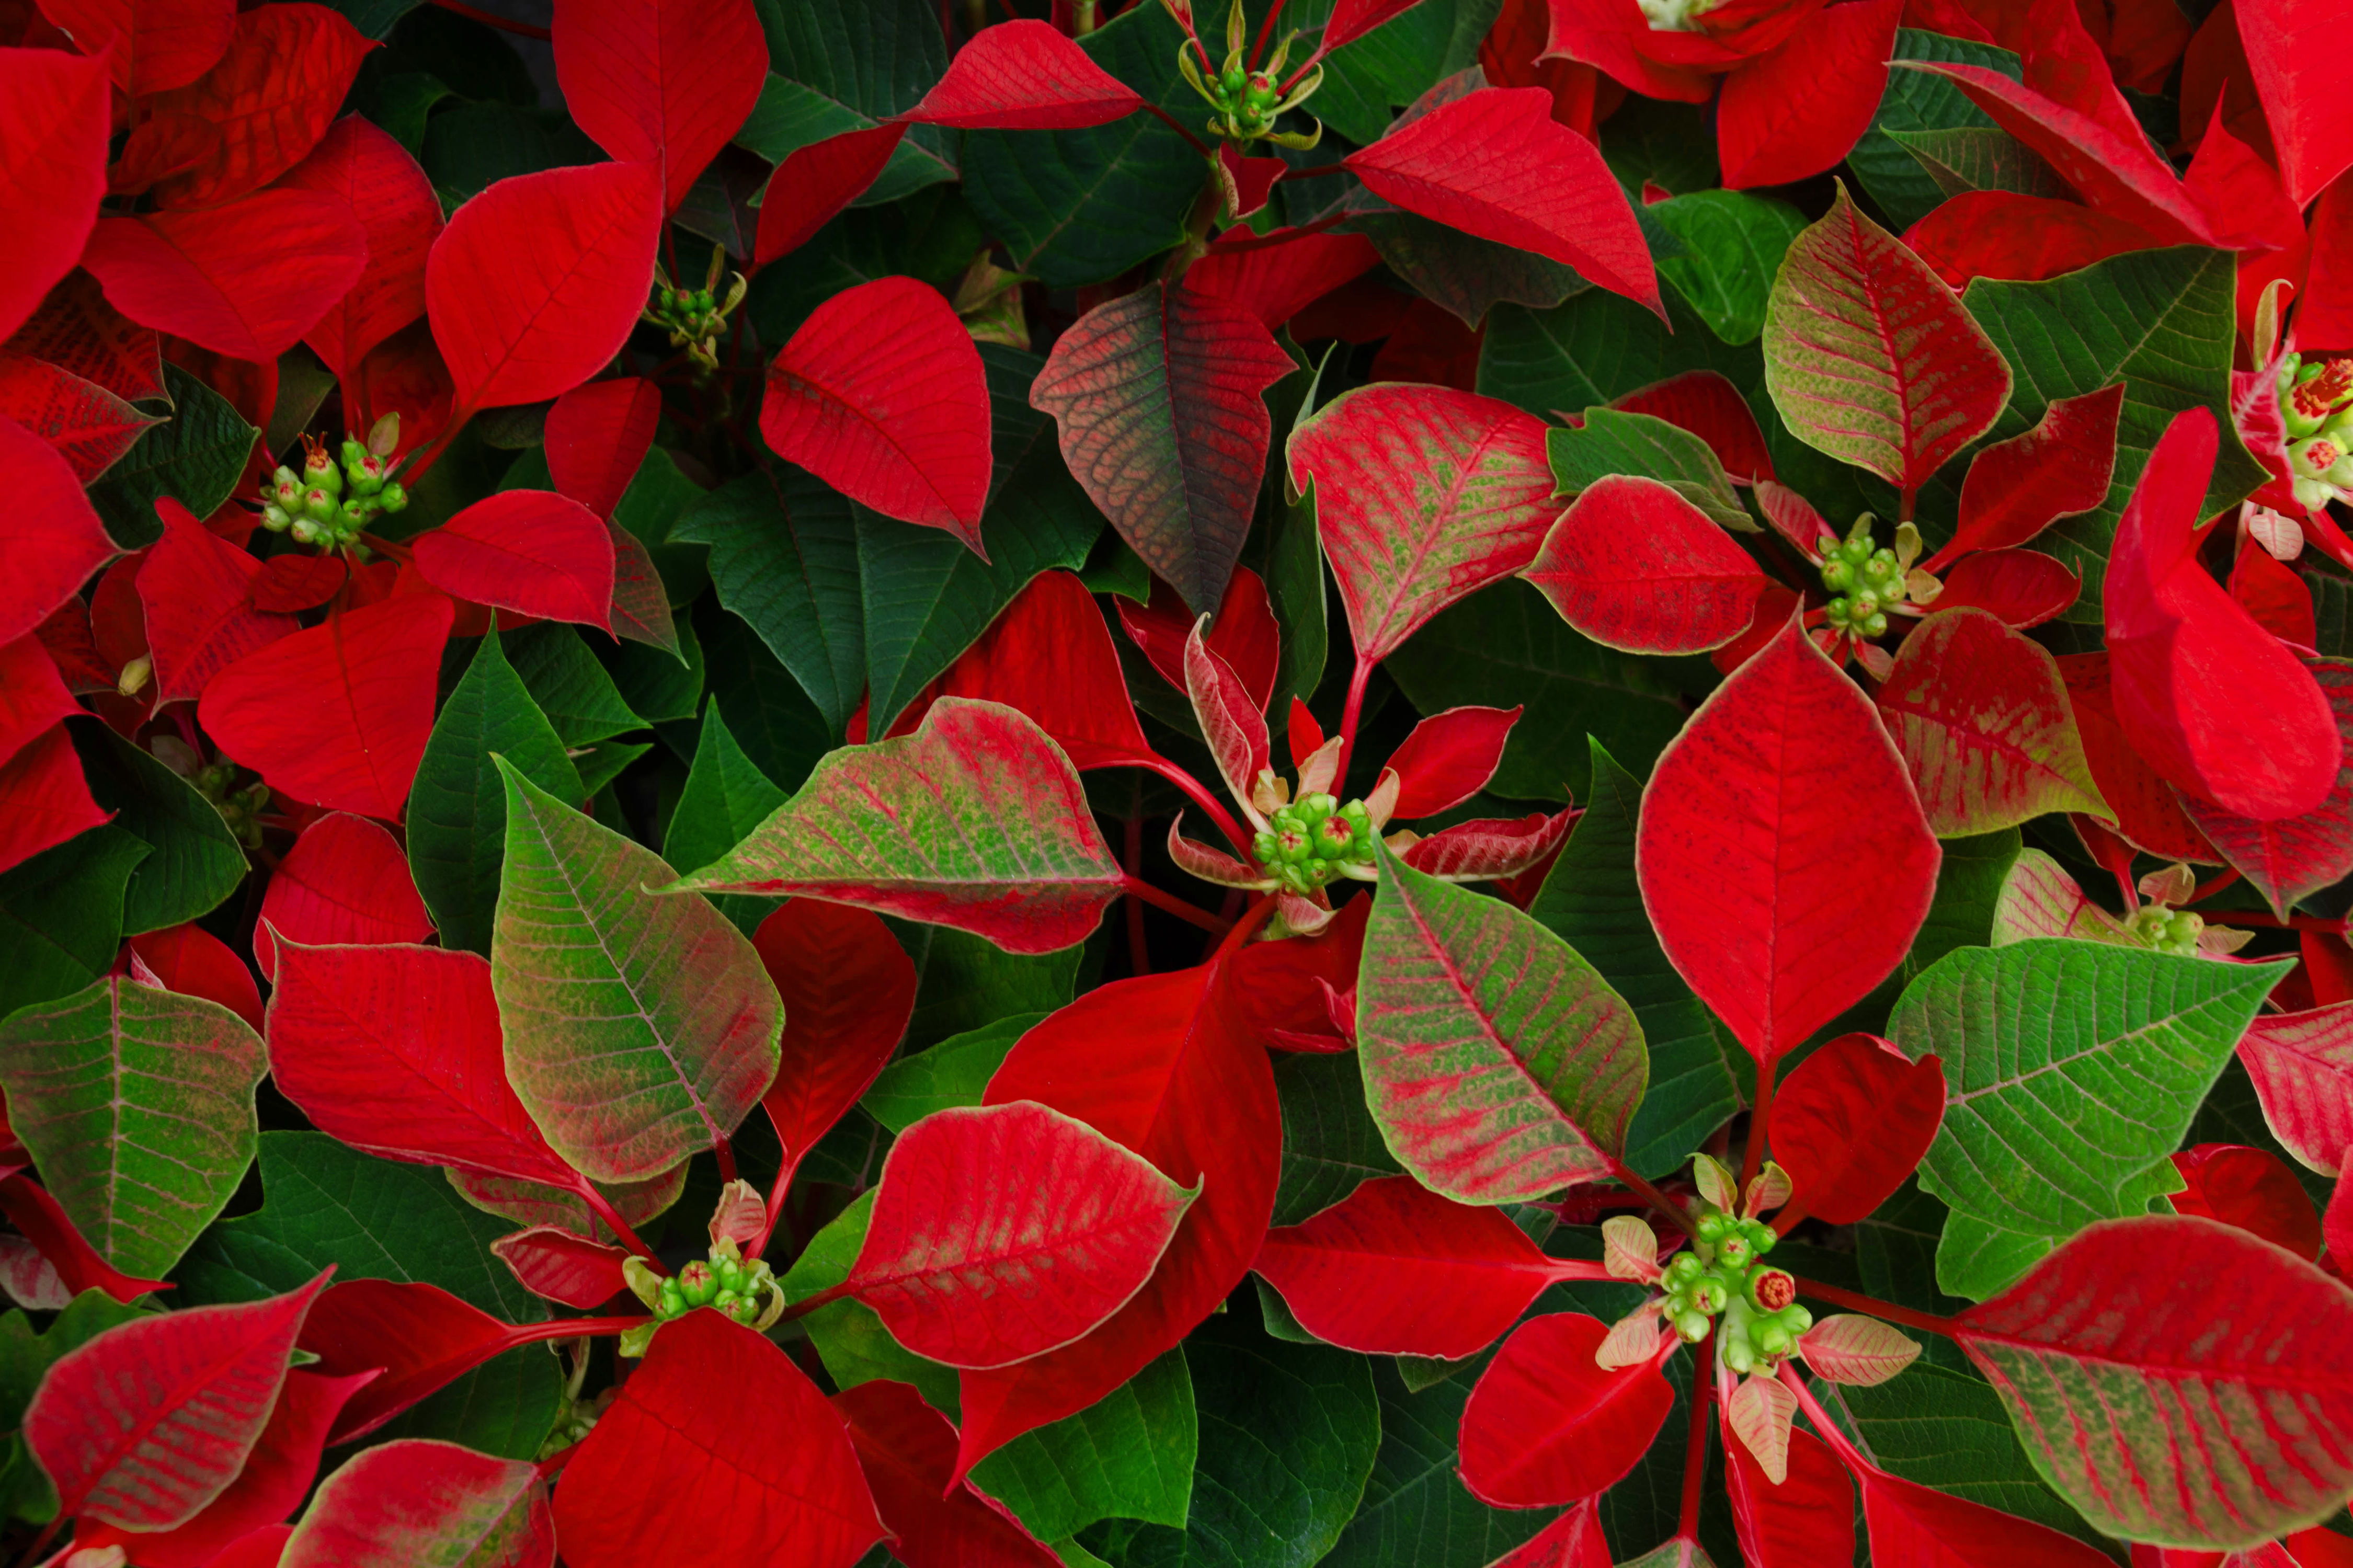 17 Best Christmas Plants - Winter Plants and Flowers for the ... Red And Green House Plant That Like Shade on bedding plants that like shade, indoor plants that like shade, climbing plants that like shade, desert plants that like shade, blooming plants that like shade, house plants that thrive in shade, vegetable plants that like shade, vining plants that like shade, tropical plants that like shade, pool equipment cover for shade, house plants that like sun, flowering plants that like shade, patio plants that like shade,